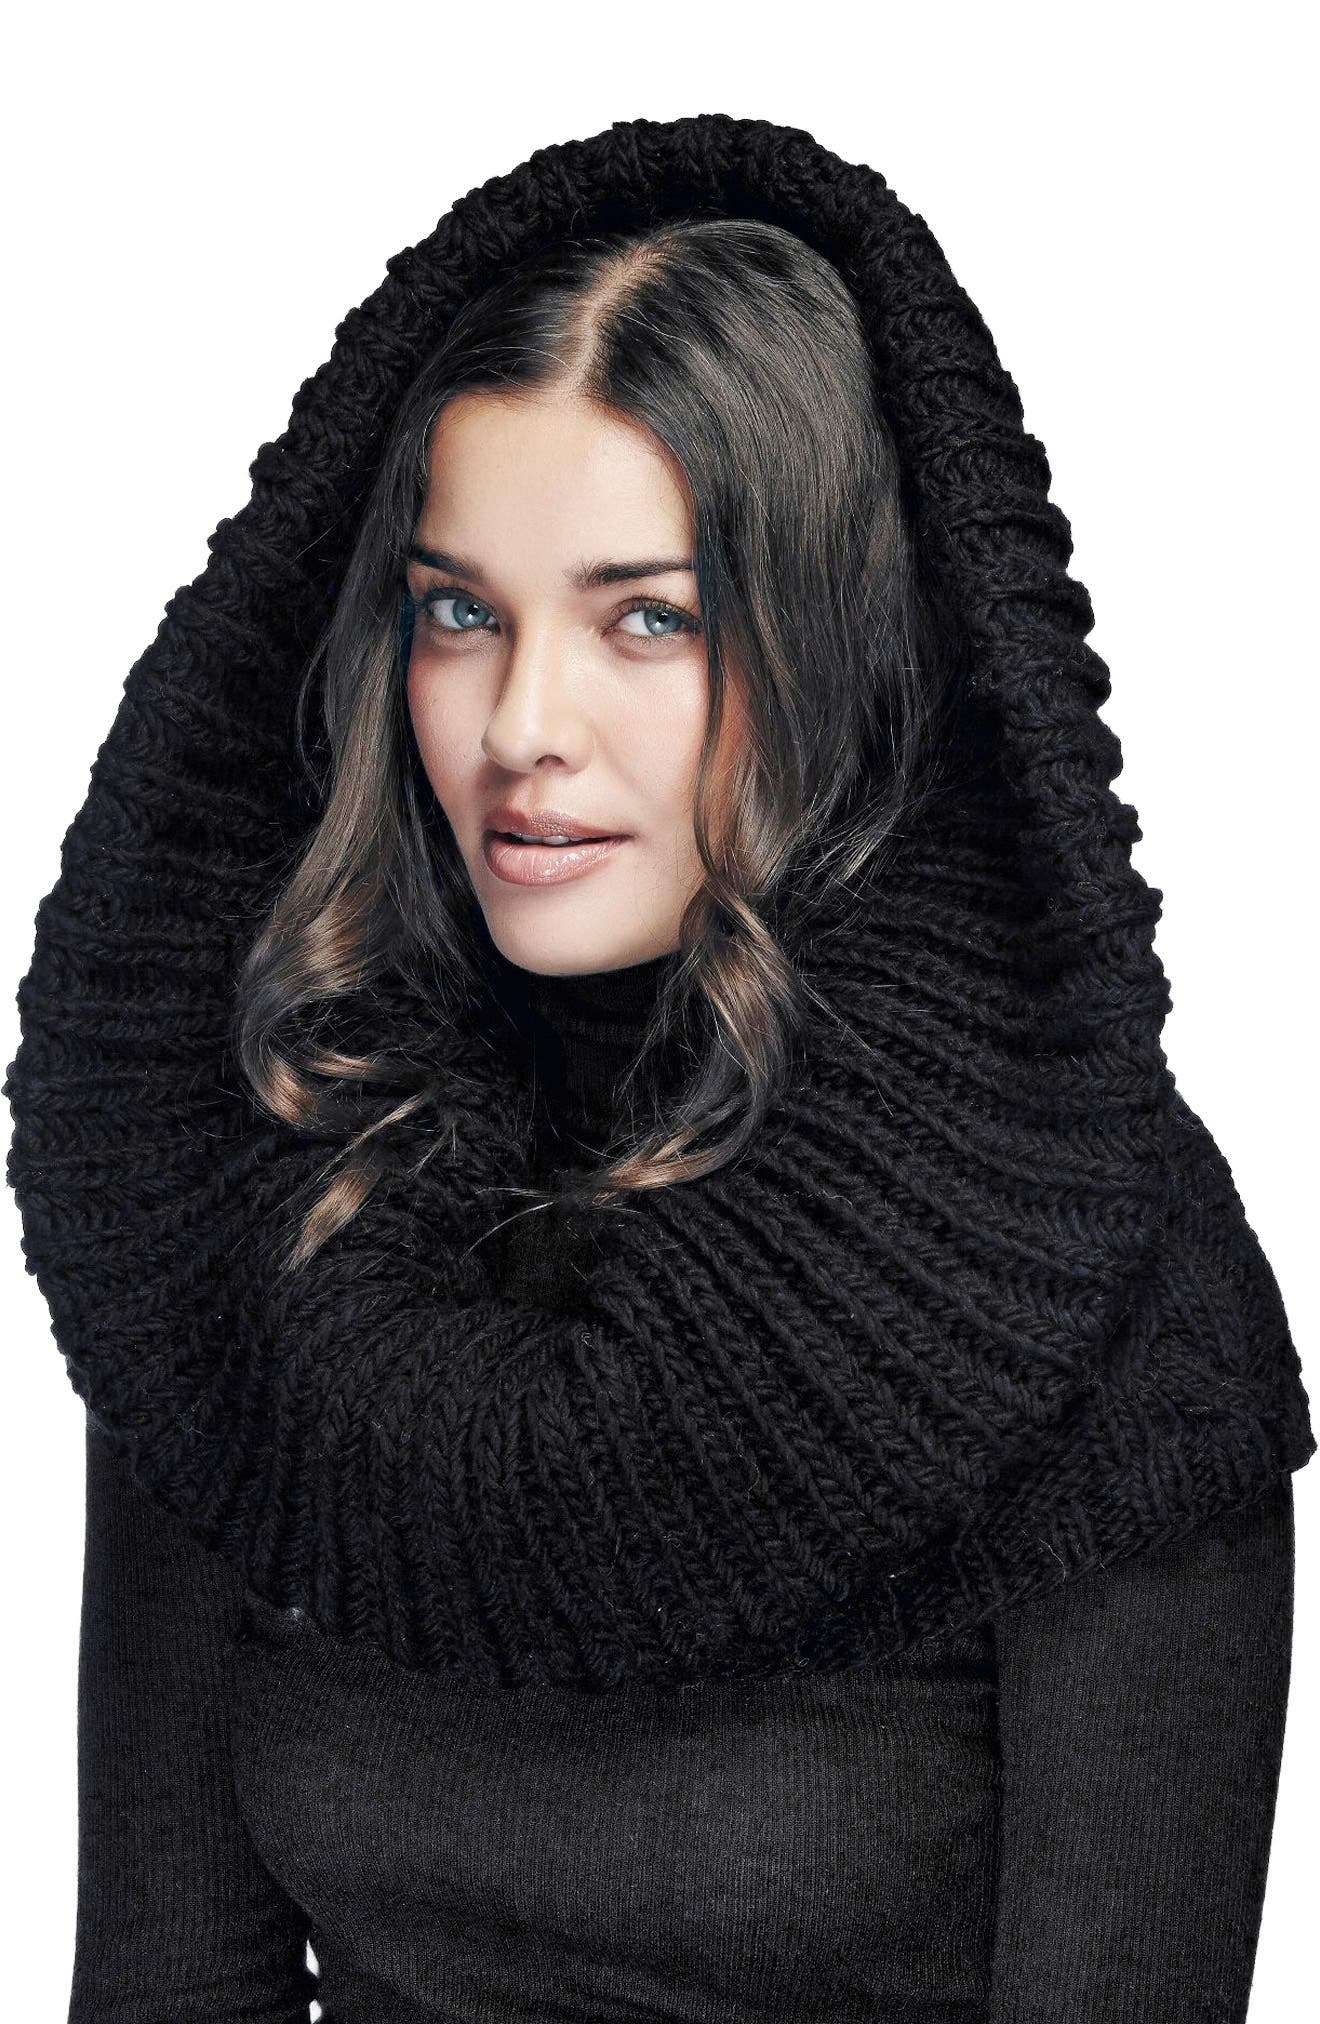 Oversize Cable Knit Wool Infinity Scarf,                             Main thumbnail 1, color,                             BLACK